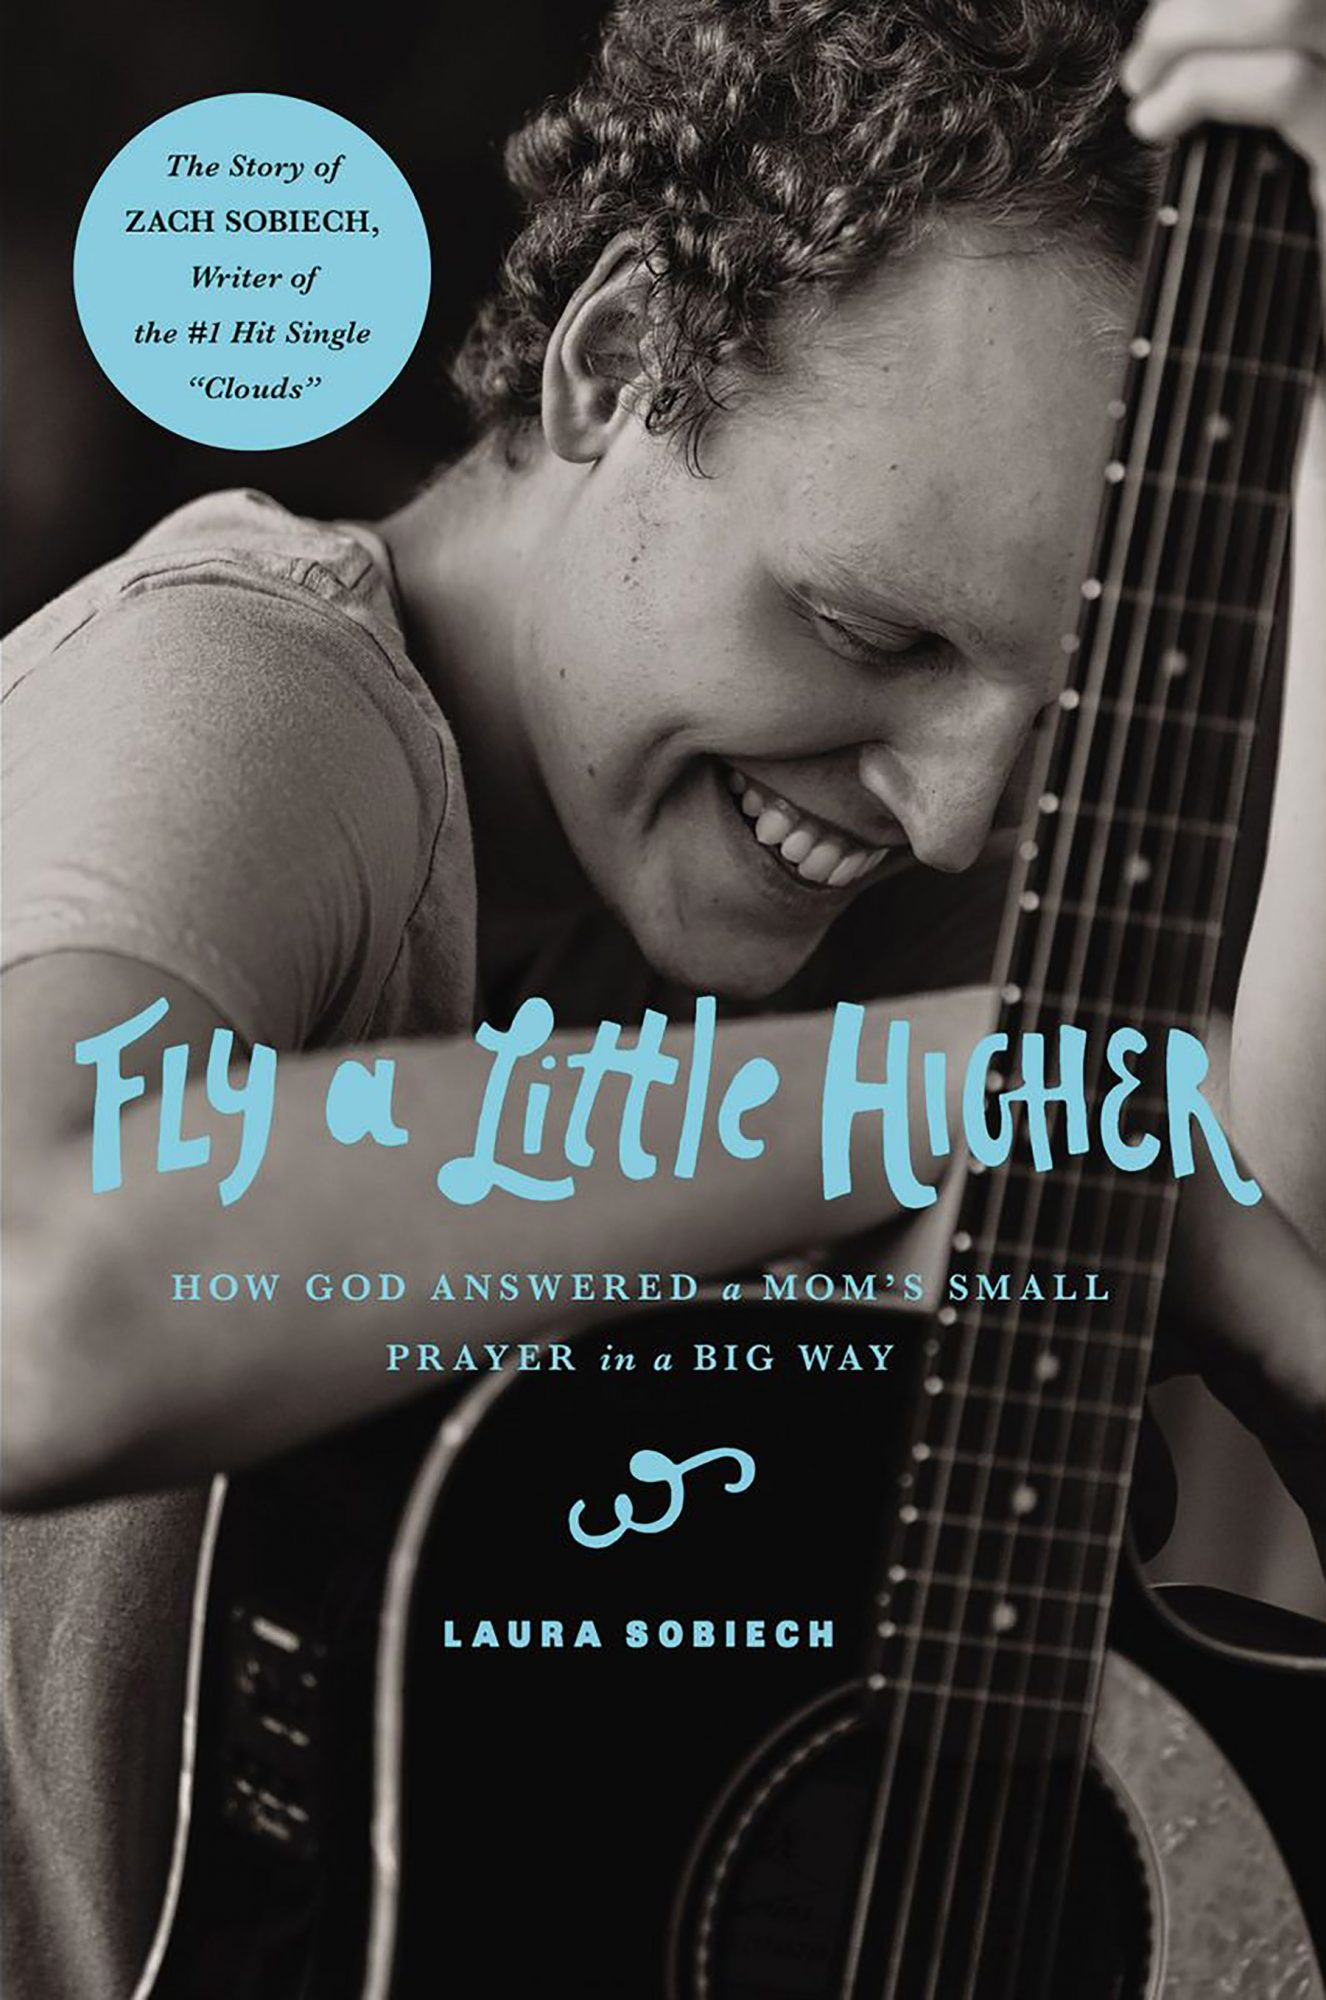 Fly A Little Higher by Laura Sobiech